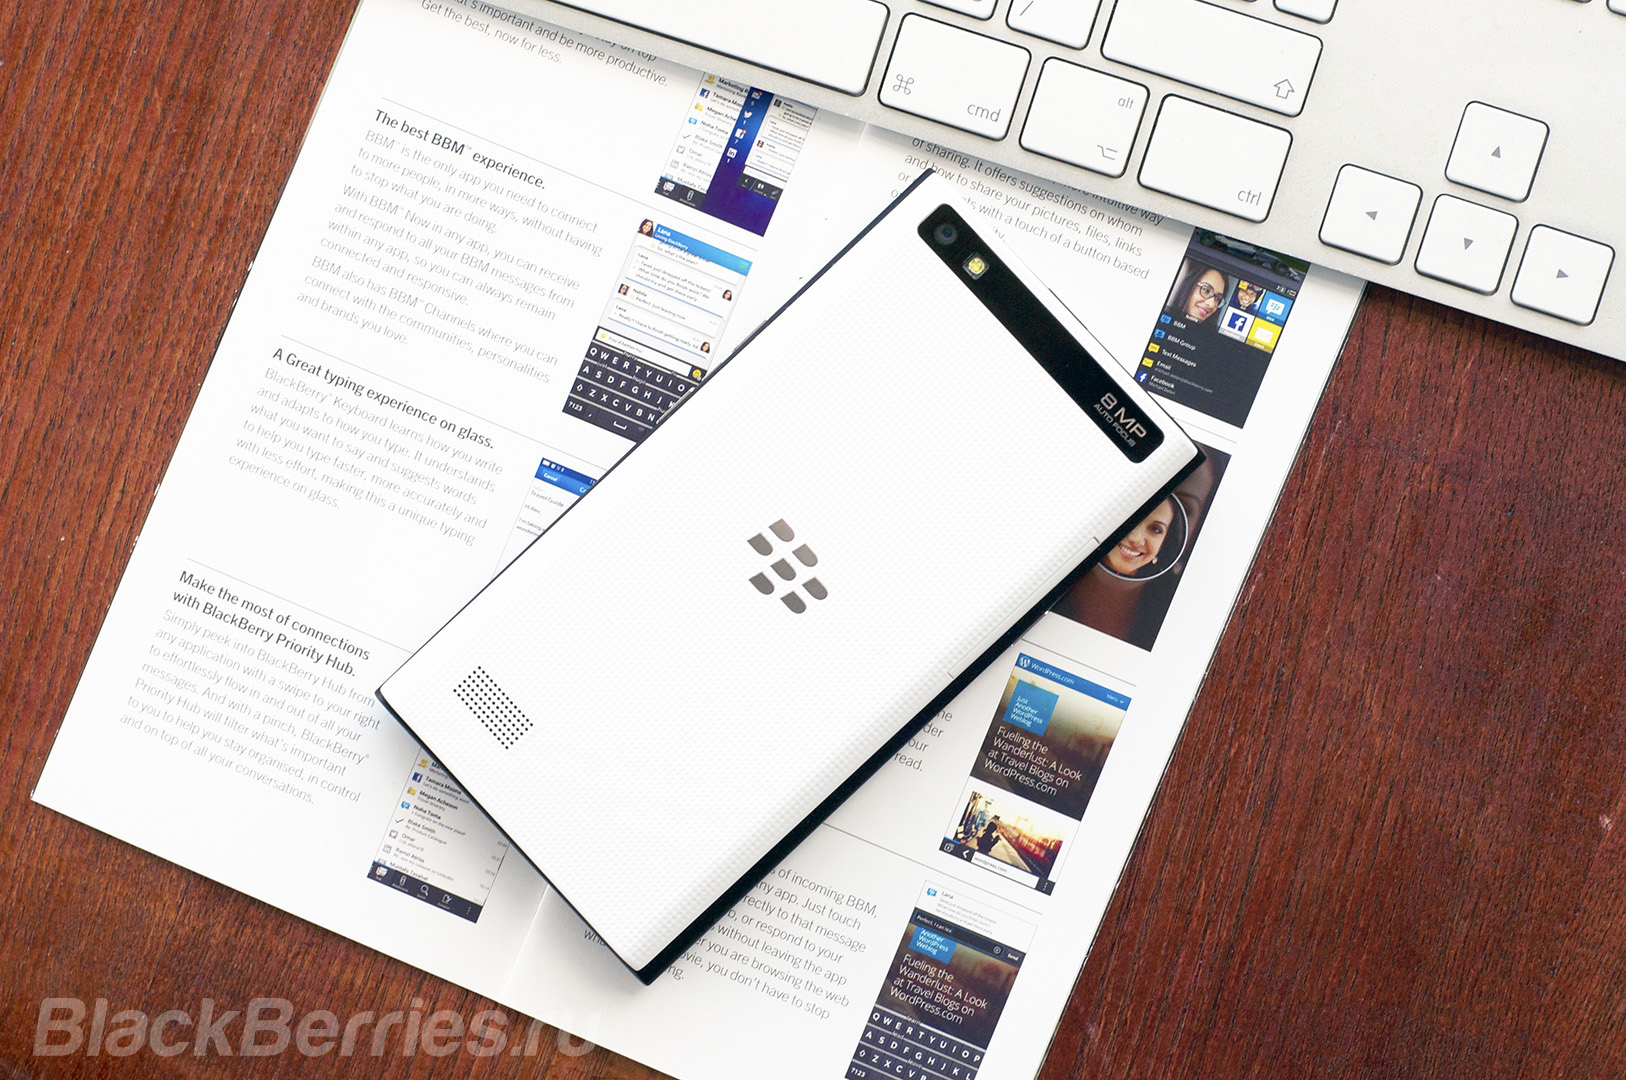 BlackBerry-Priv-Leap-08